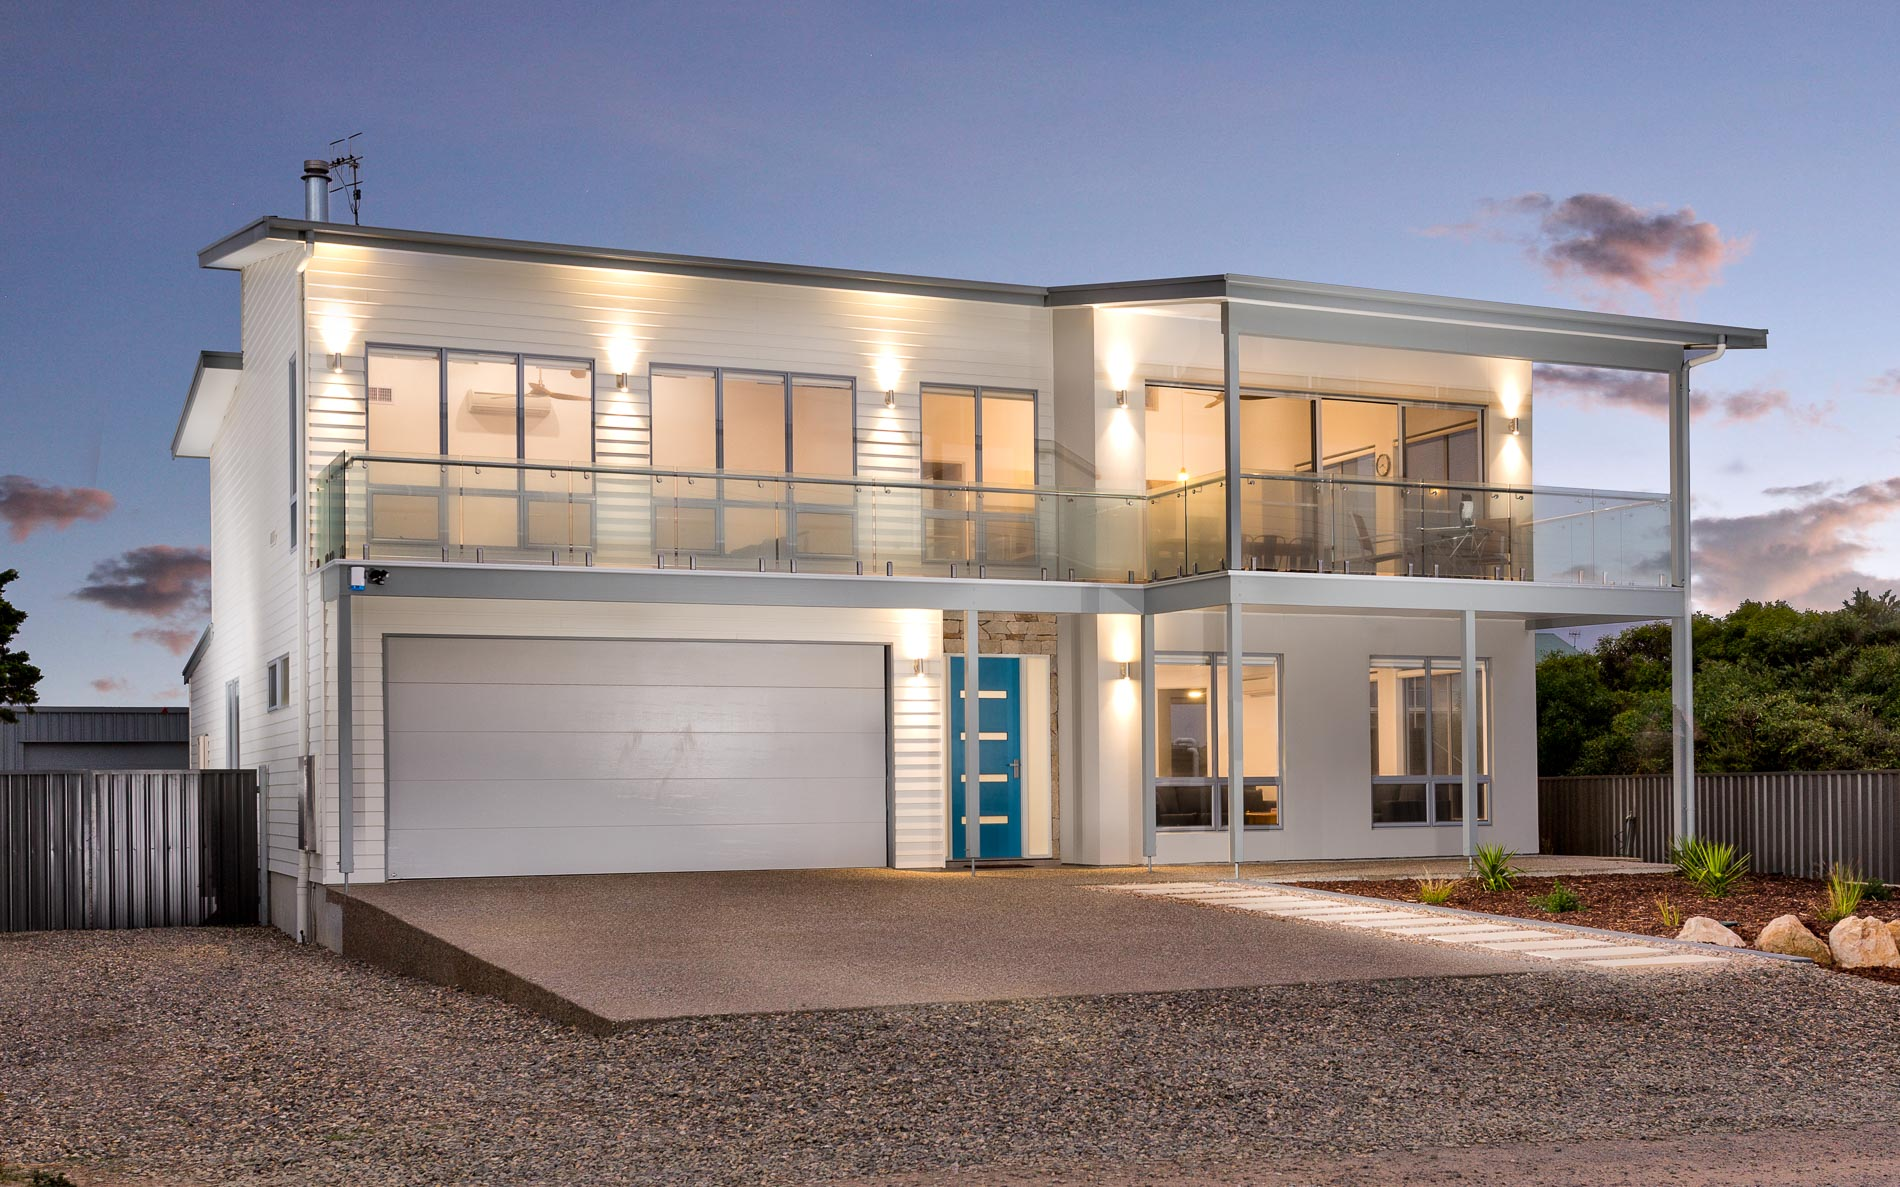 Award Winning, Custom Home, New Home, Two Storey, Builders, Design, Middleton SA, Fleurieu, Feature Door, Front View, Balcony, Balustrades